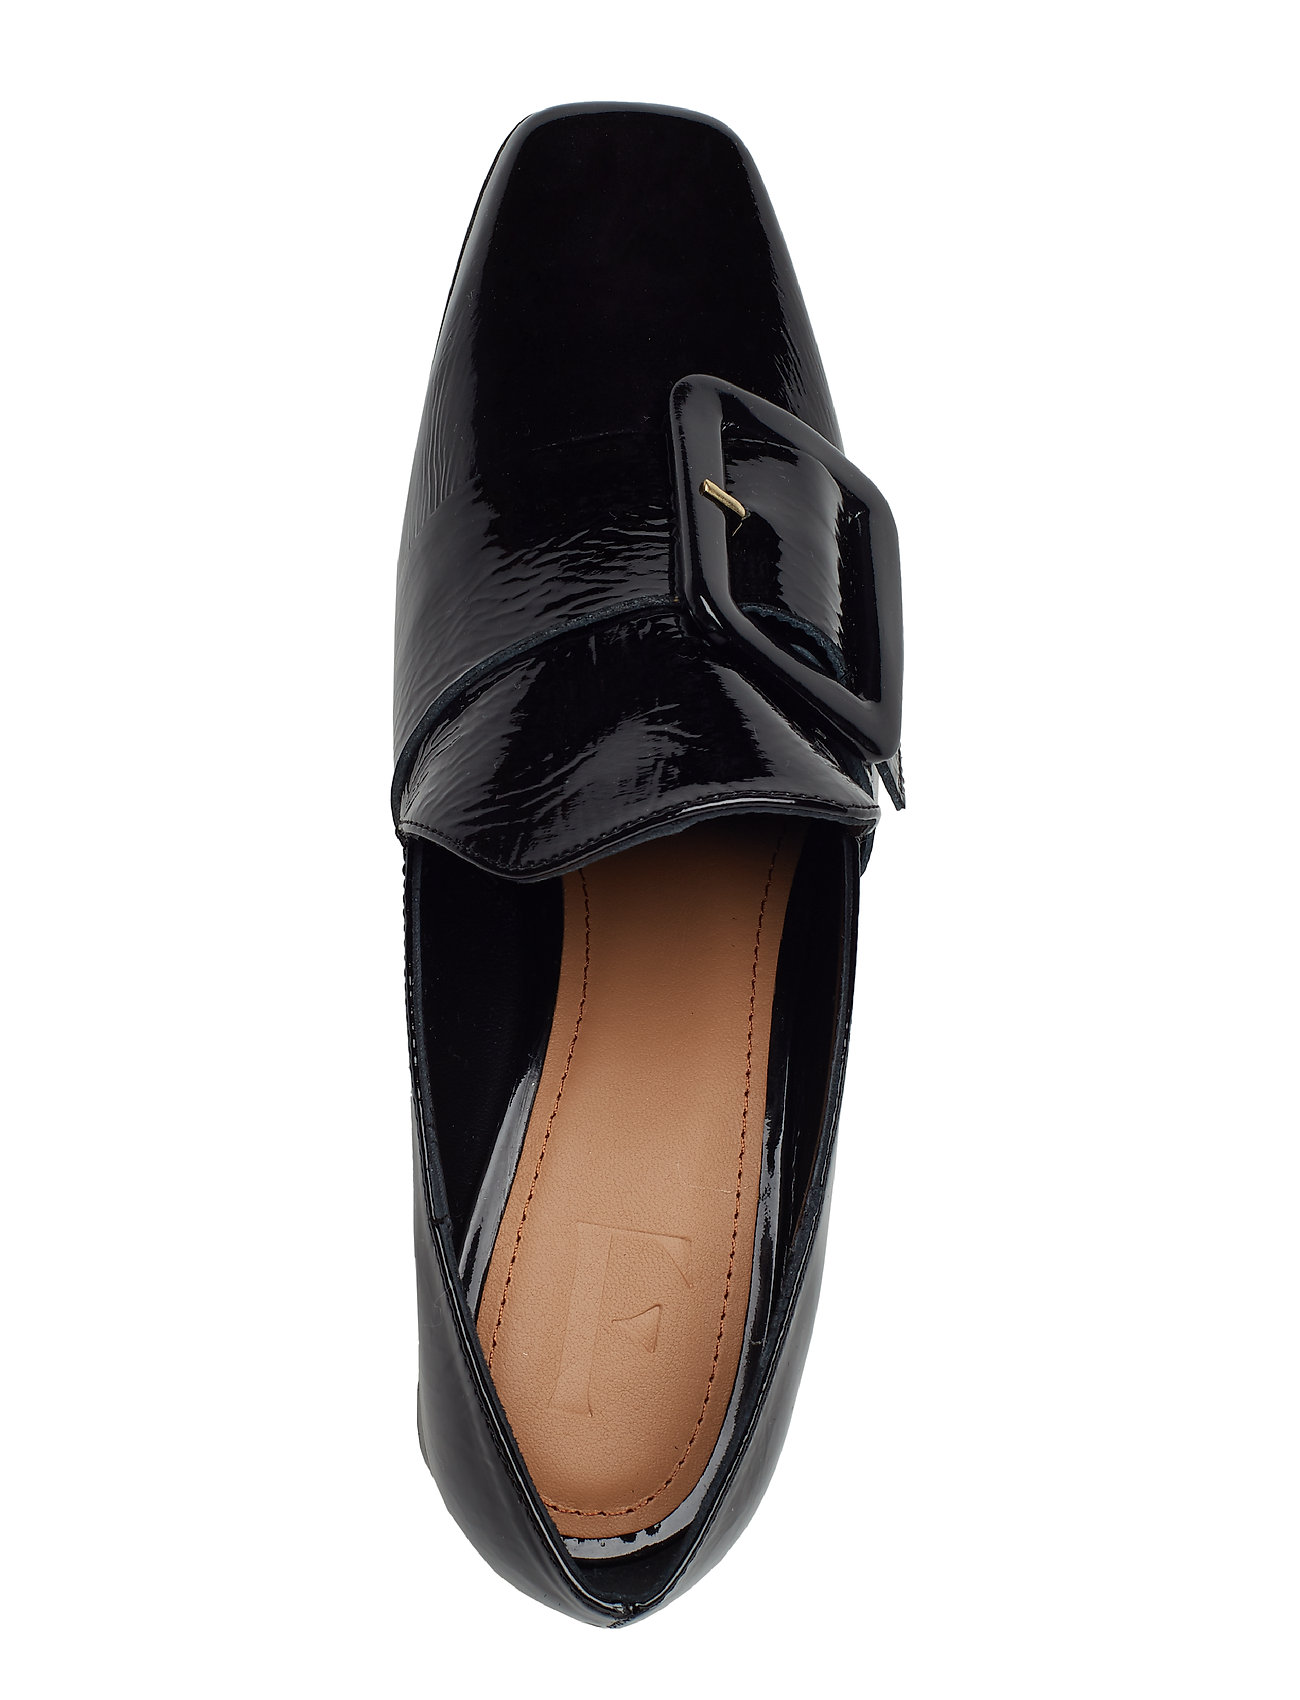 PatentFlattered Lily Leather Leather Pumpblack Pumpblack PatentFlattered Lily e9IHEYWD2